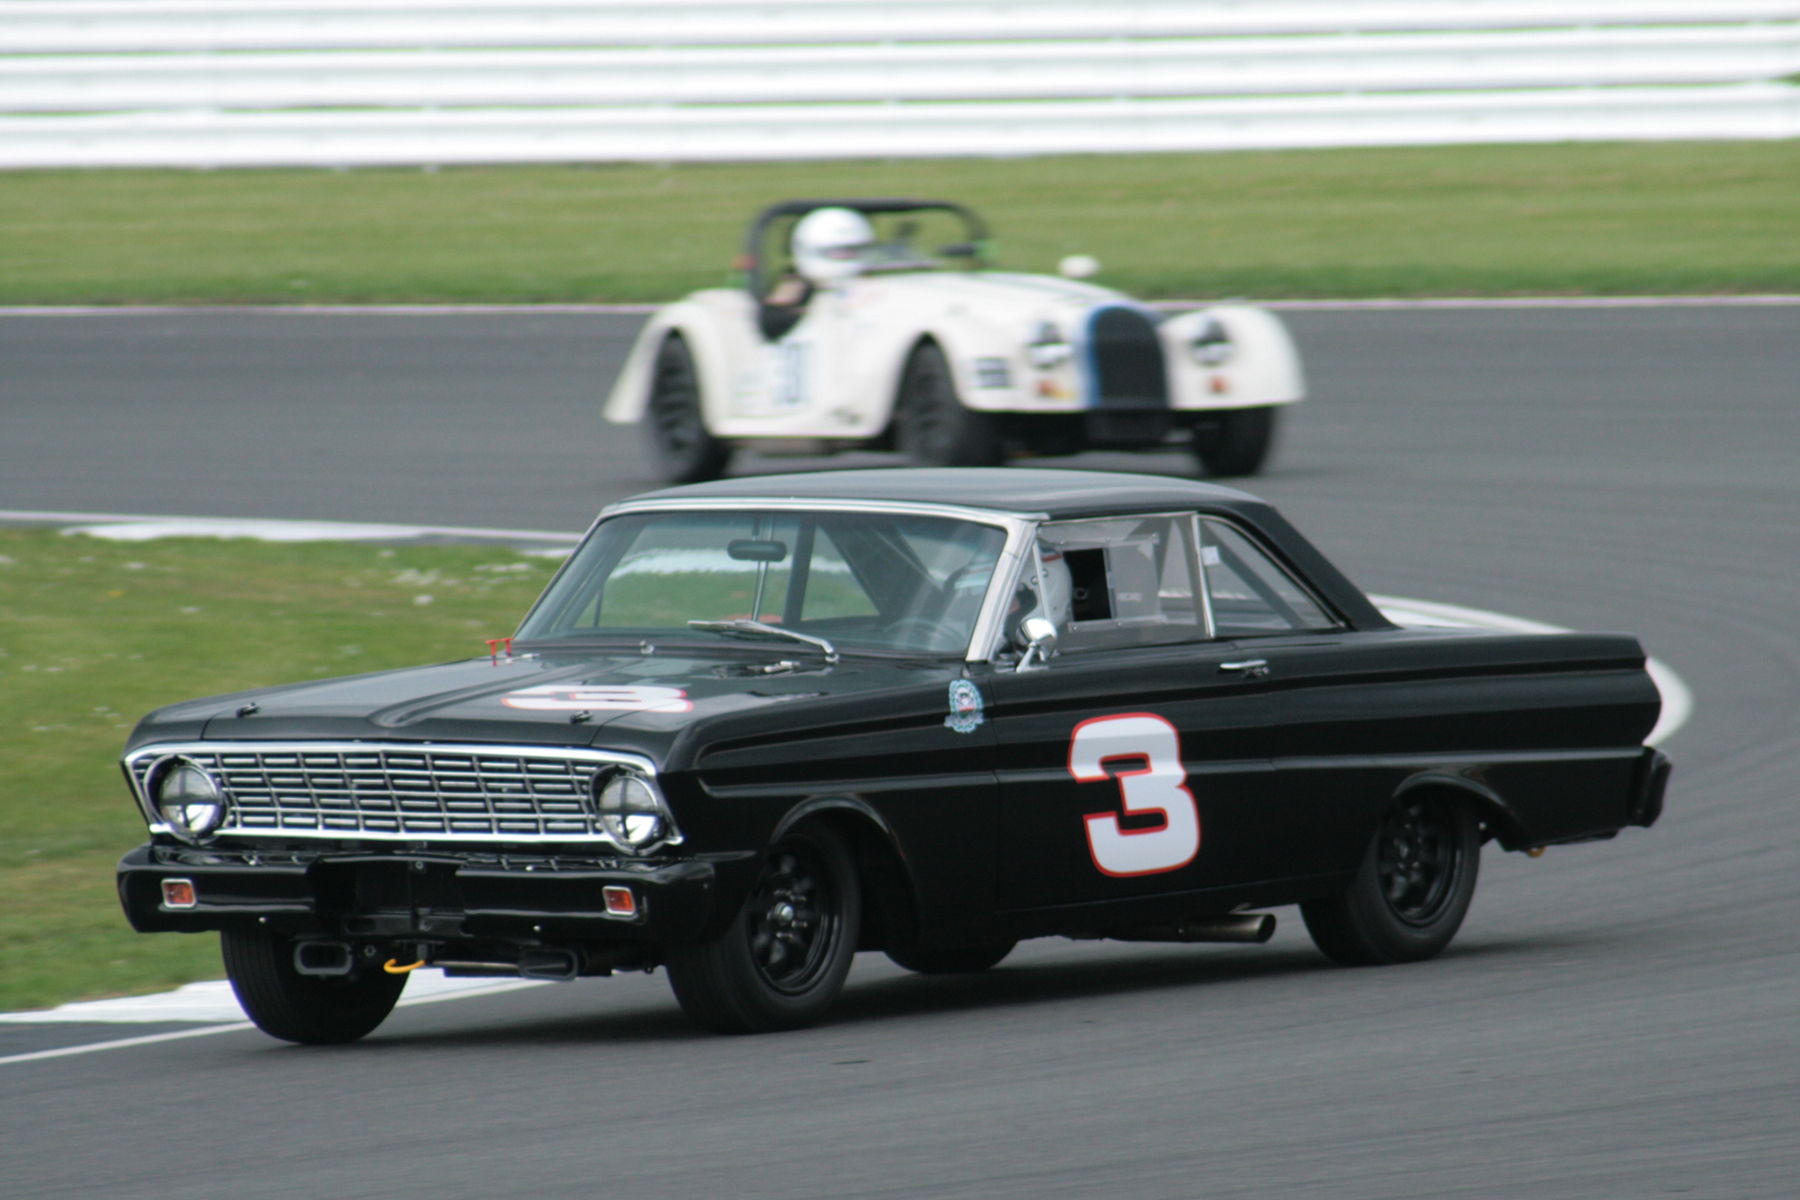 The Leo Voyazides/Simon Hadfield Ford Falcon was 5th overall and won the invitation Historic Touring car class. This is Simon driving.  Photo - John Turner